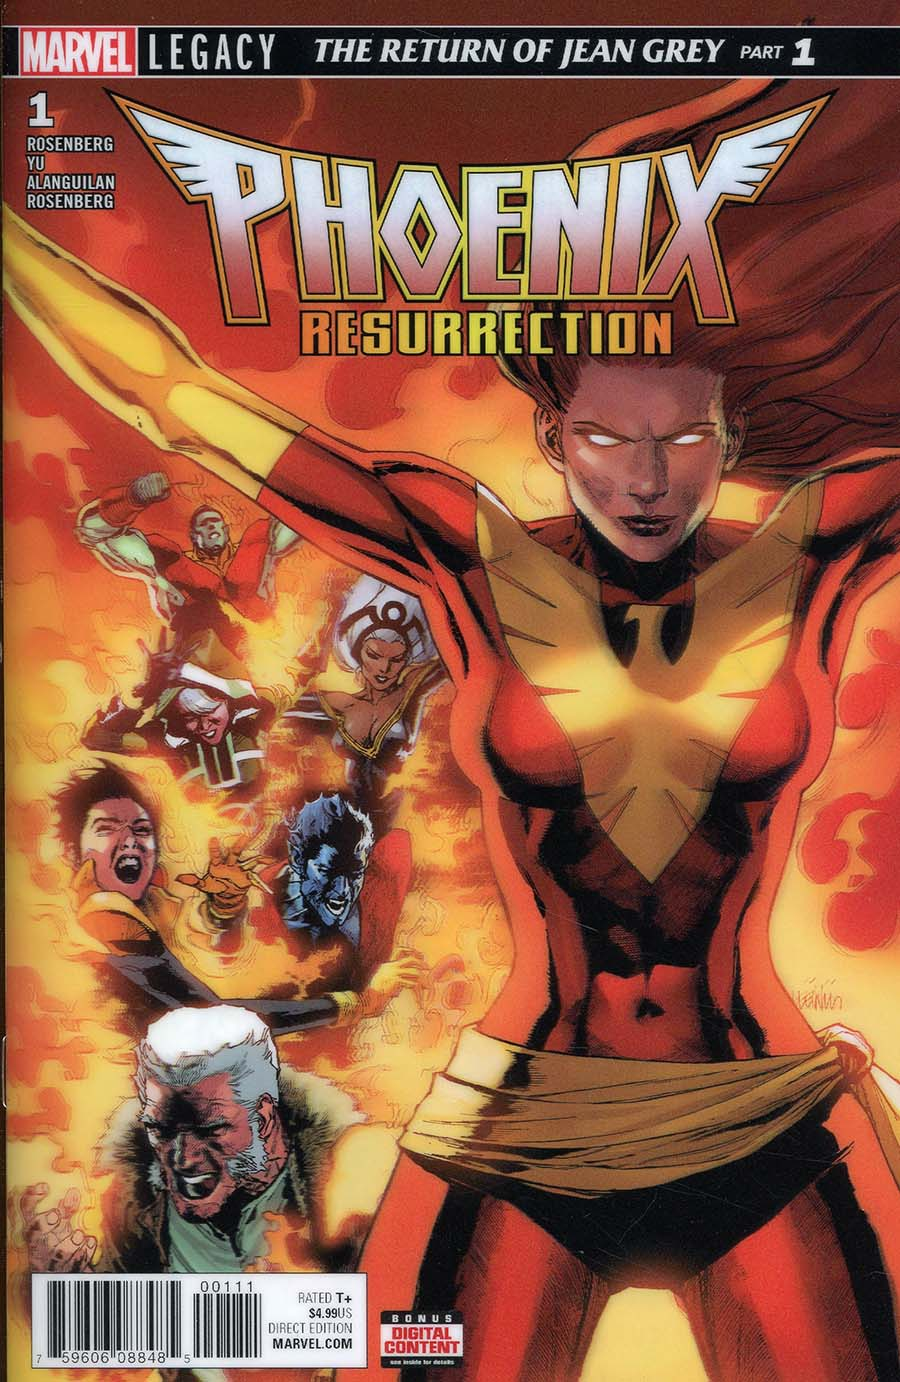 Phoenix Resurrection Return Of (Adult) Jean Grey #1 Cover A 1st Ptg Regular Leinil Francis Yu 3D Lenticular Cover (Marvel Legacy Tie-In)